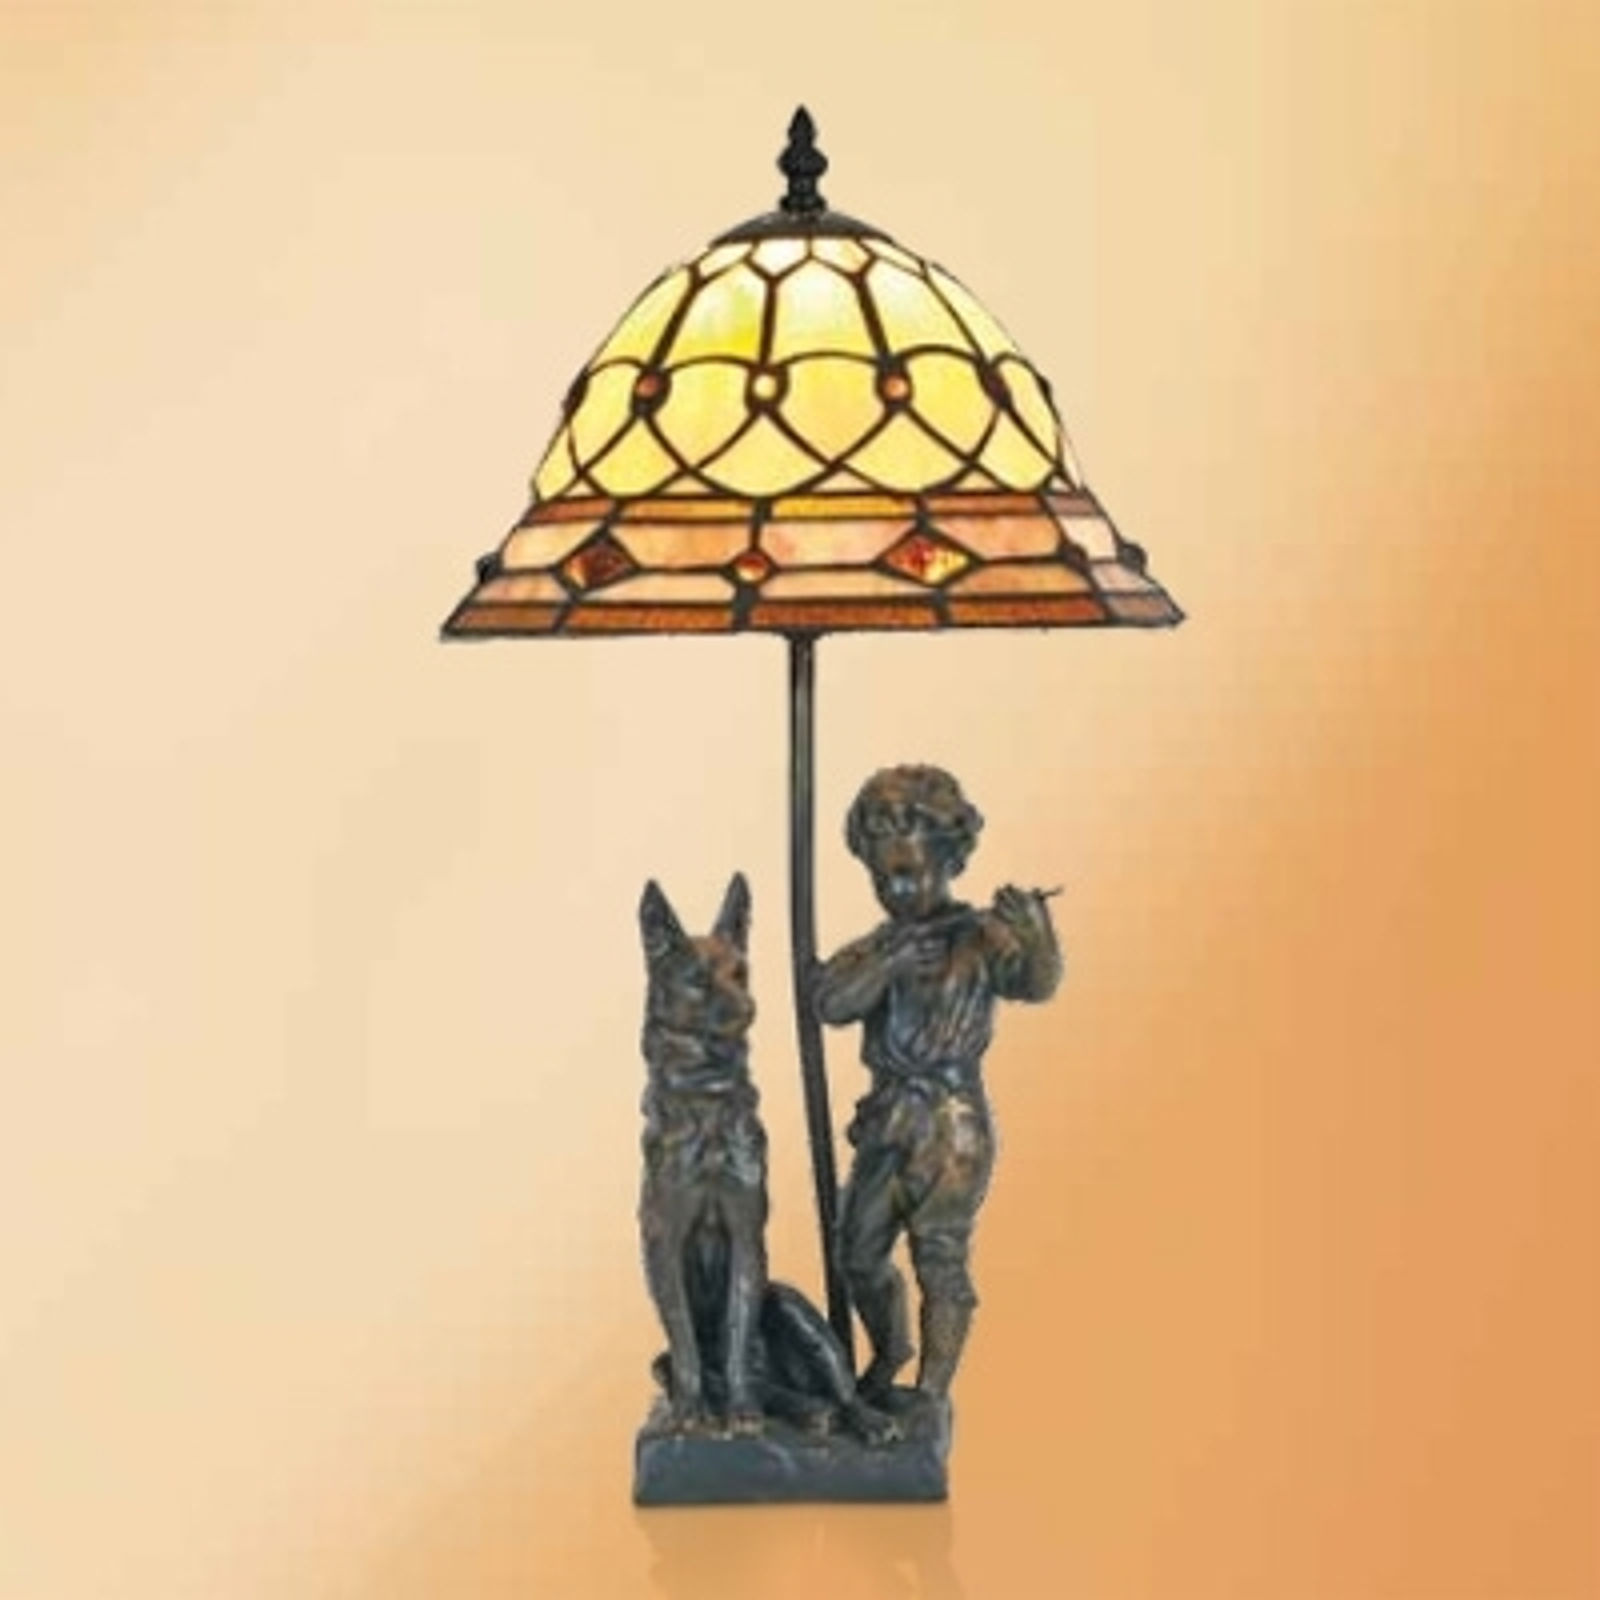 Hugo - bordlampe med harpiksfigurer, Tiffany-stil